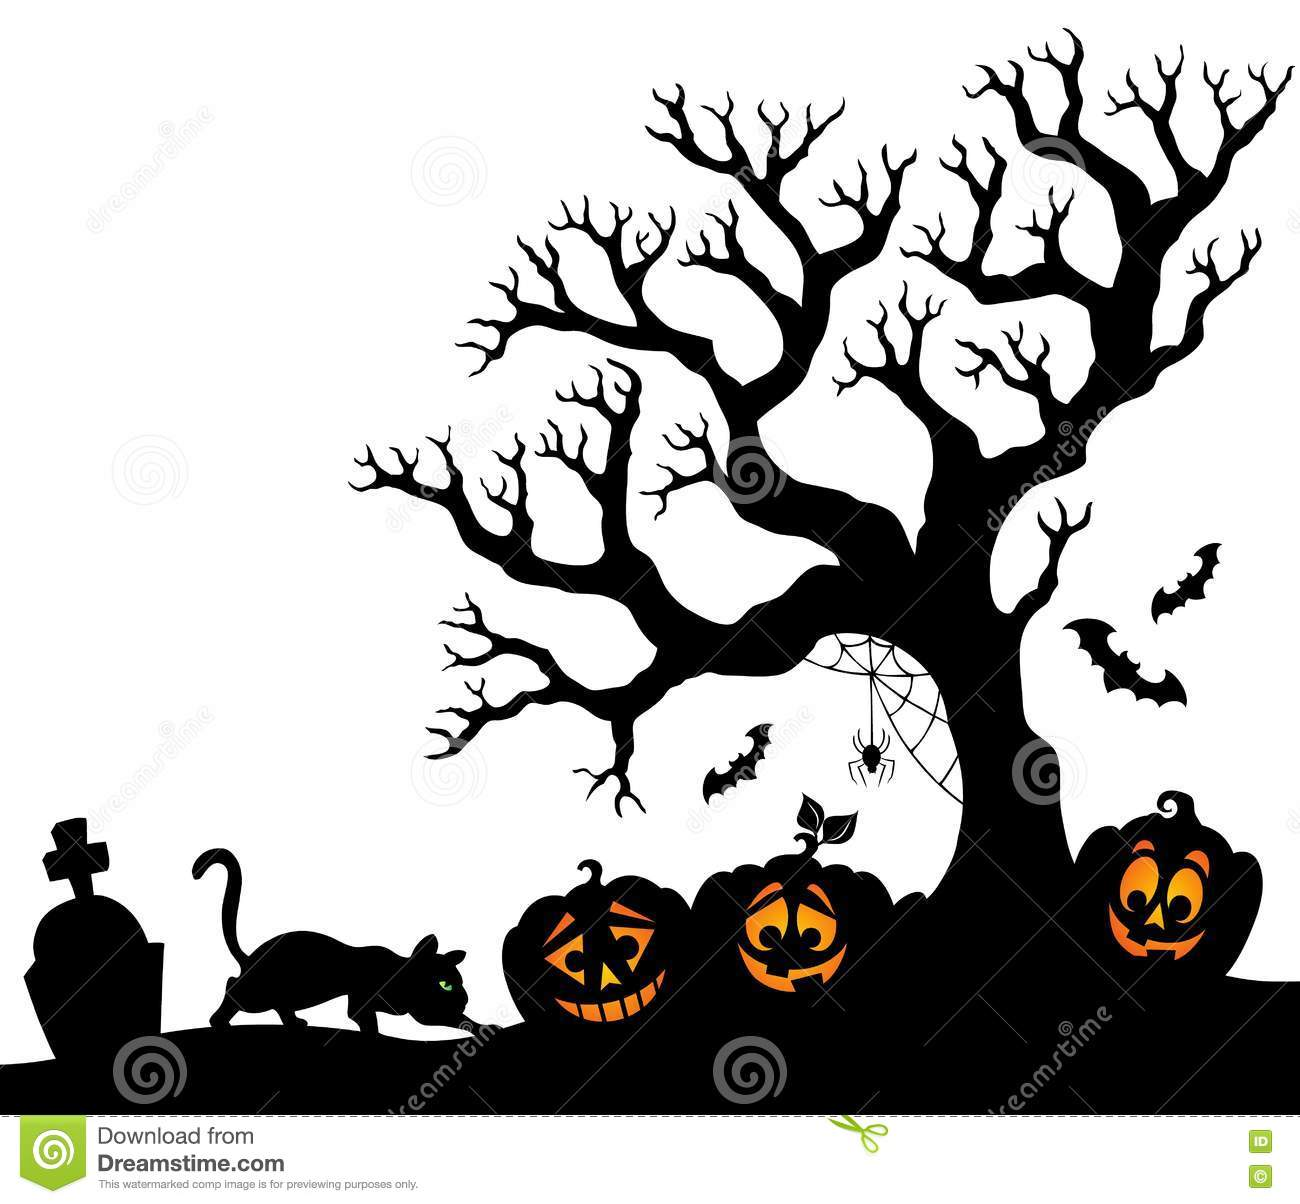 halloween tree silhouette clipart - Clipground